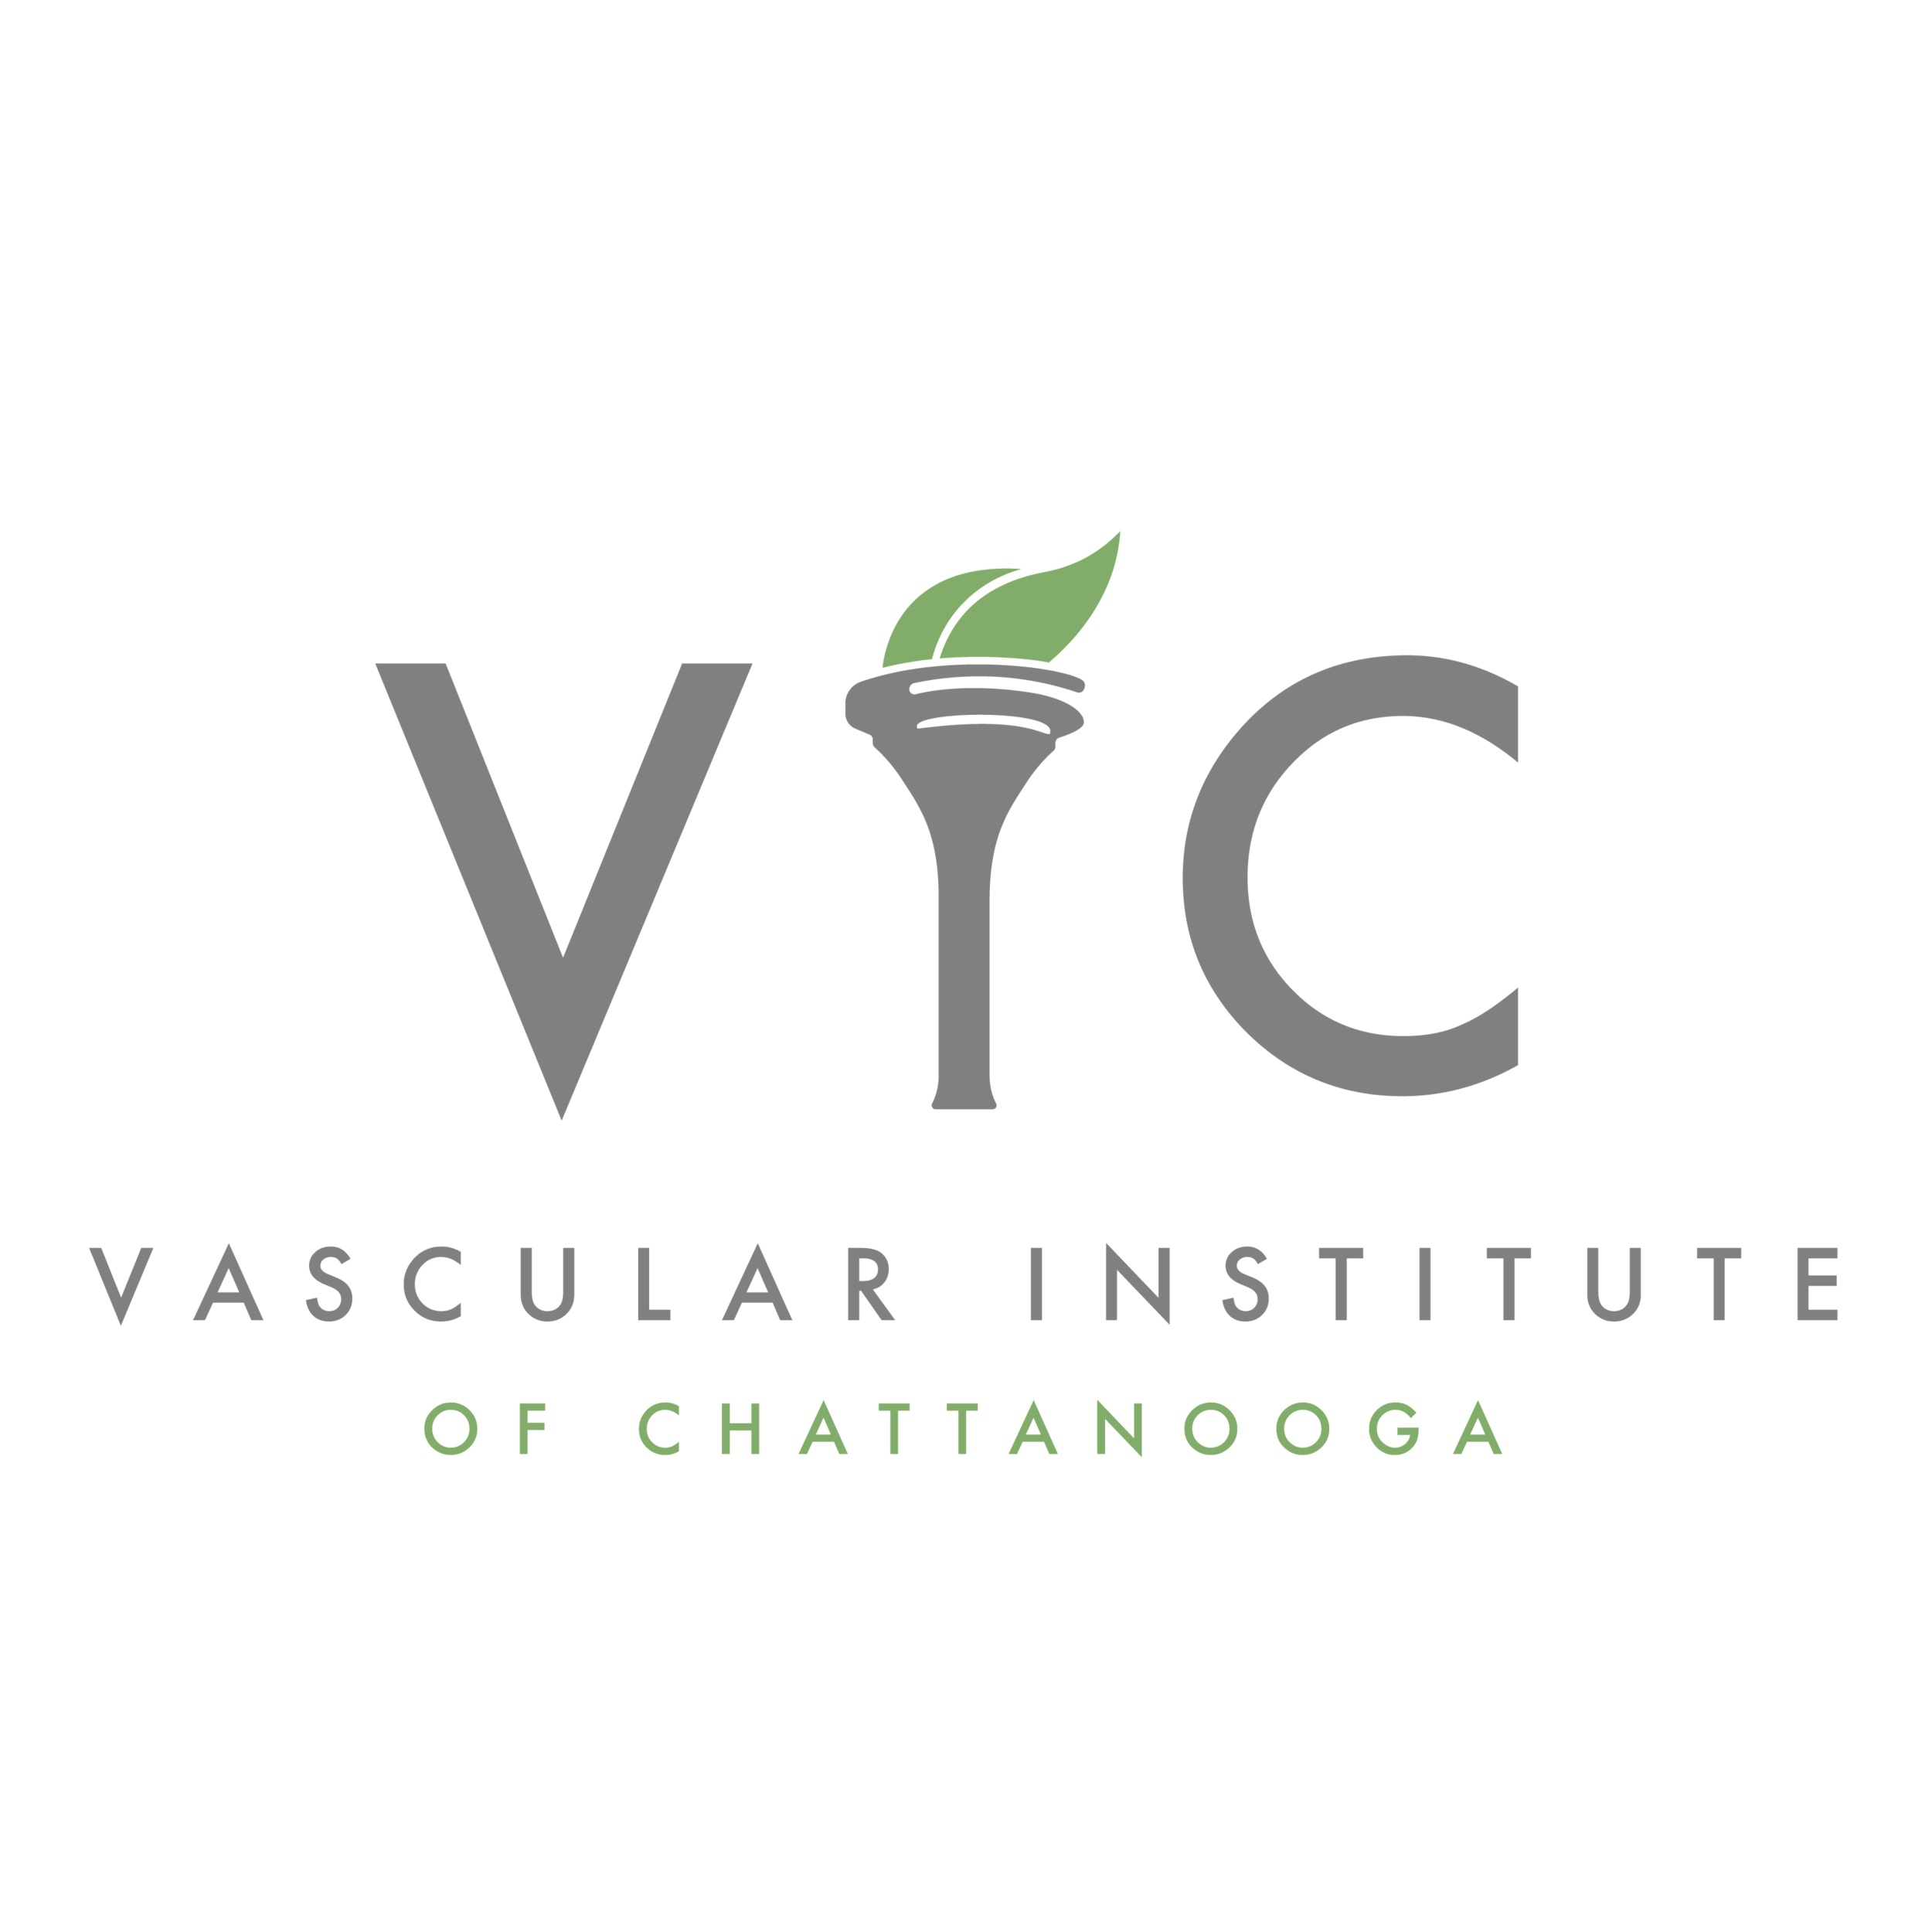 Vascular+Institute+of+Chatt.jpg